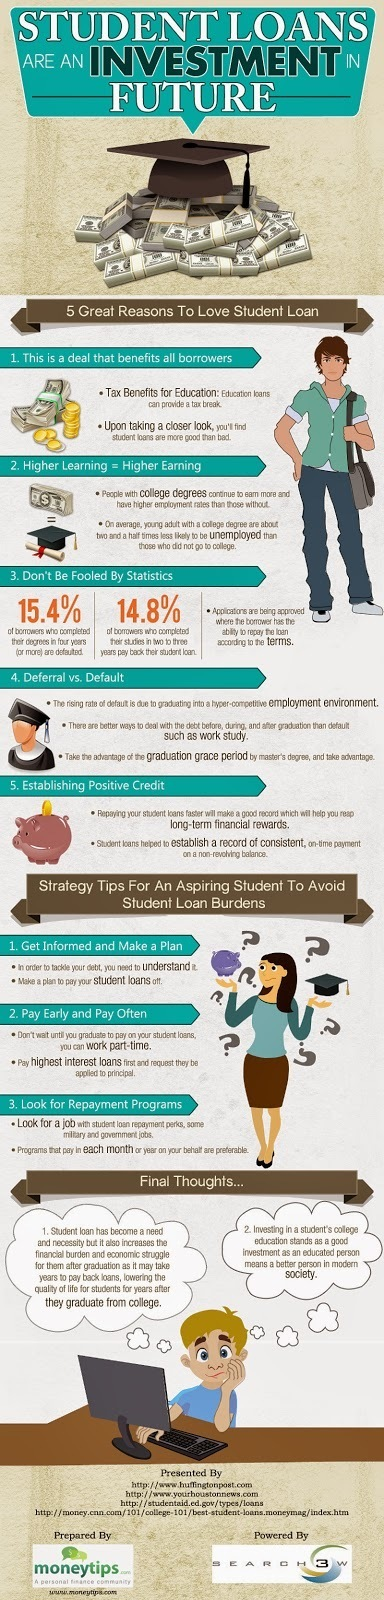 Students Loan Are An Investment In Future | moneytips | Scoop.it